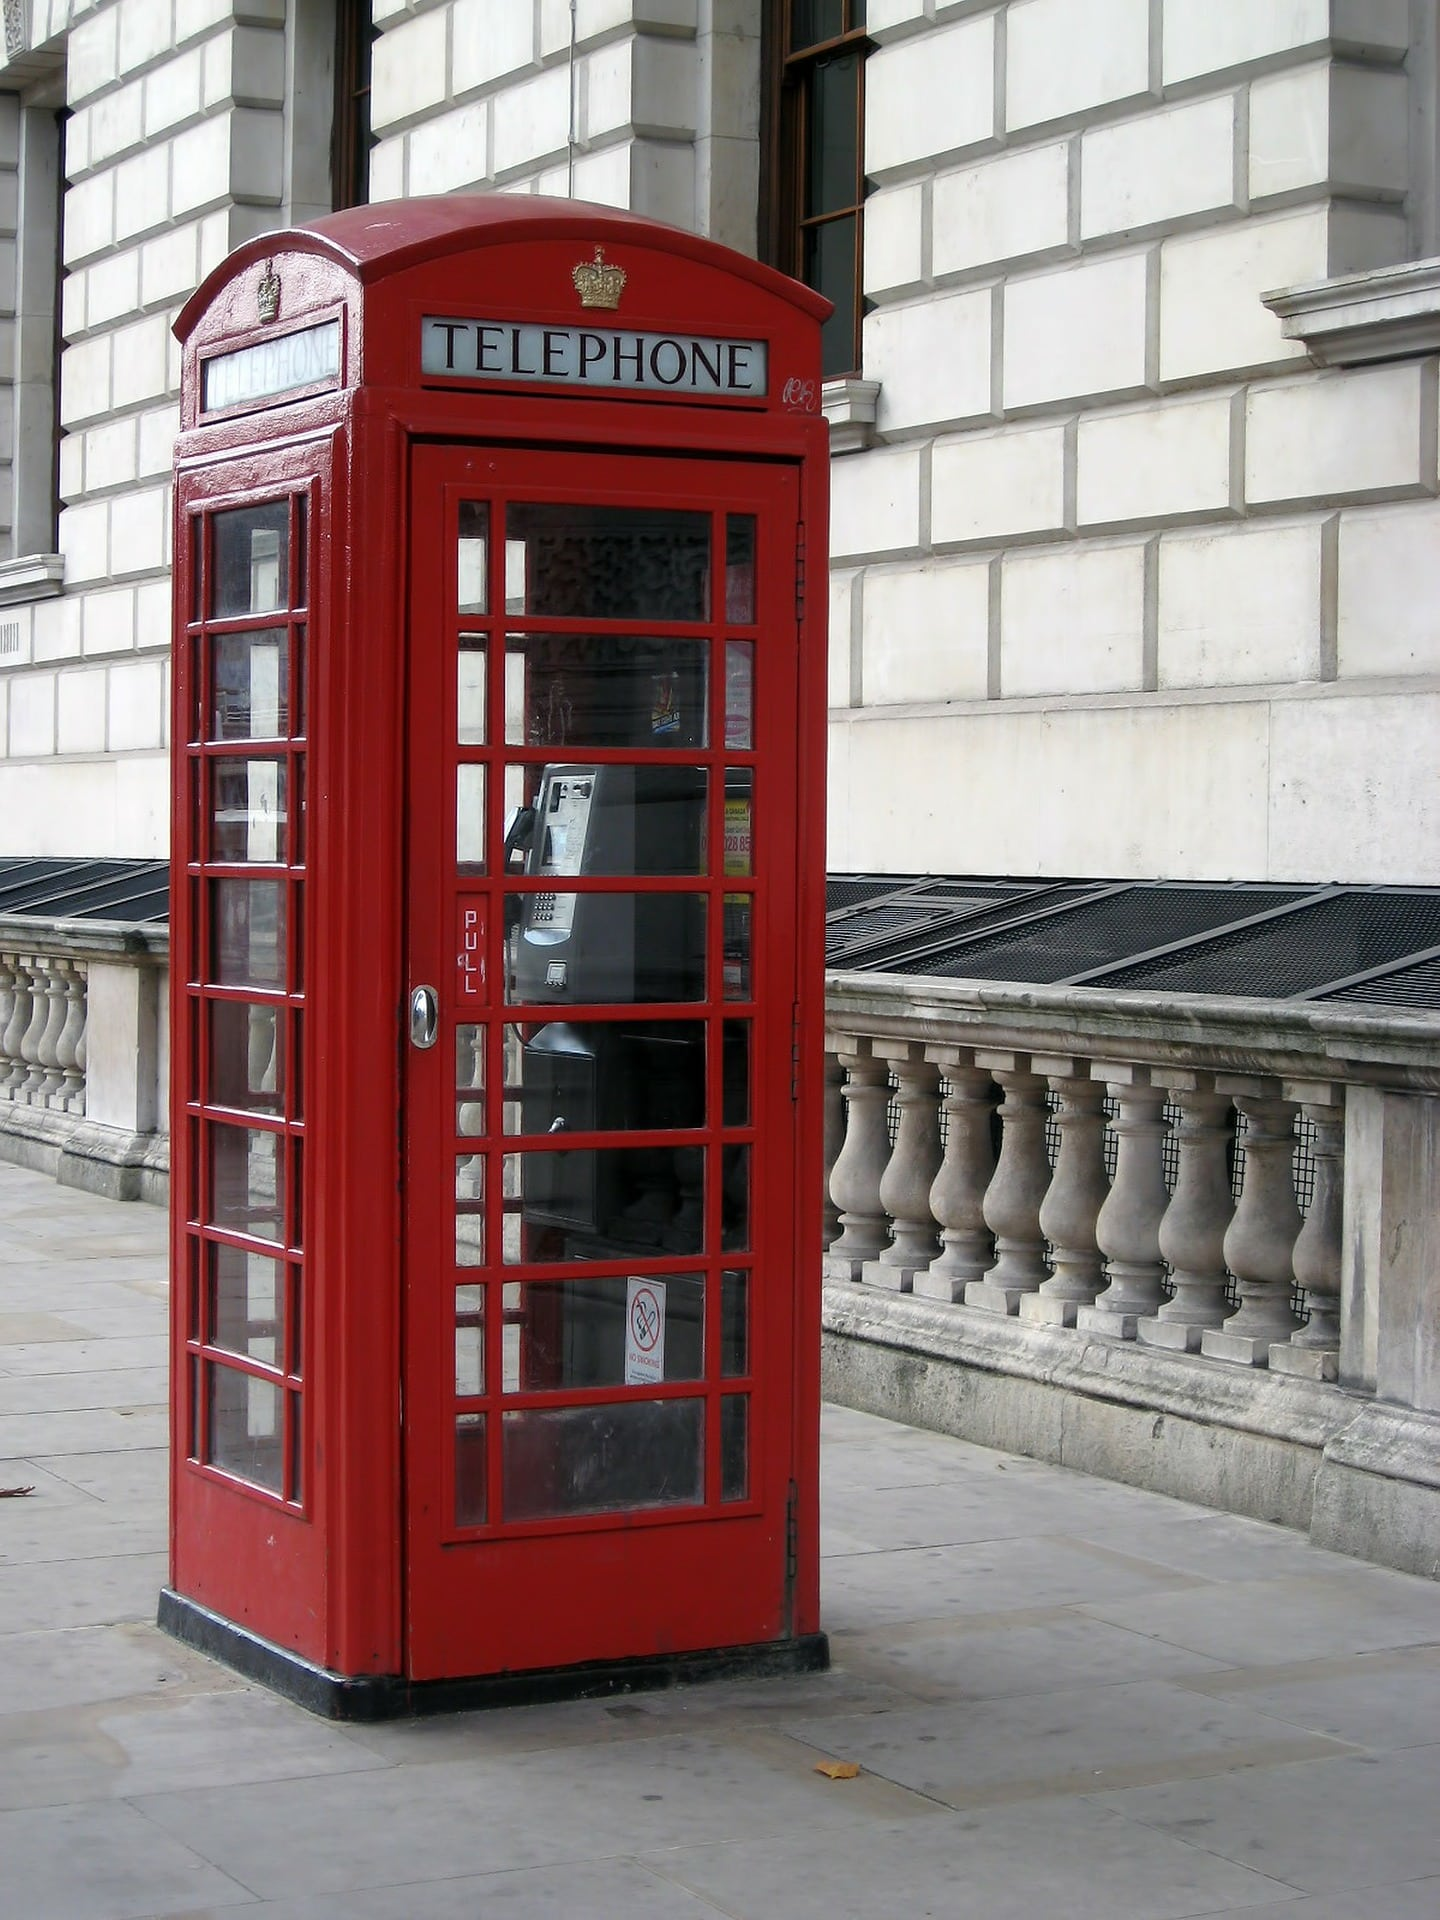 Where's a Phone Booth When You Need One?